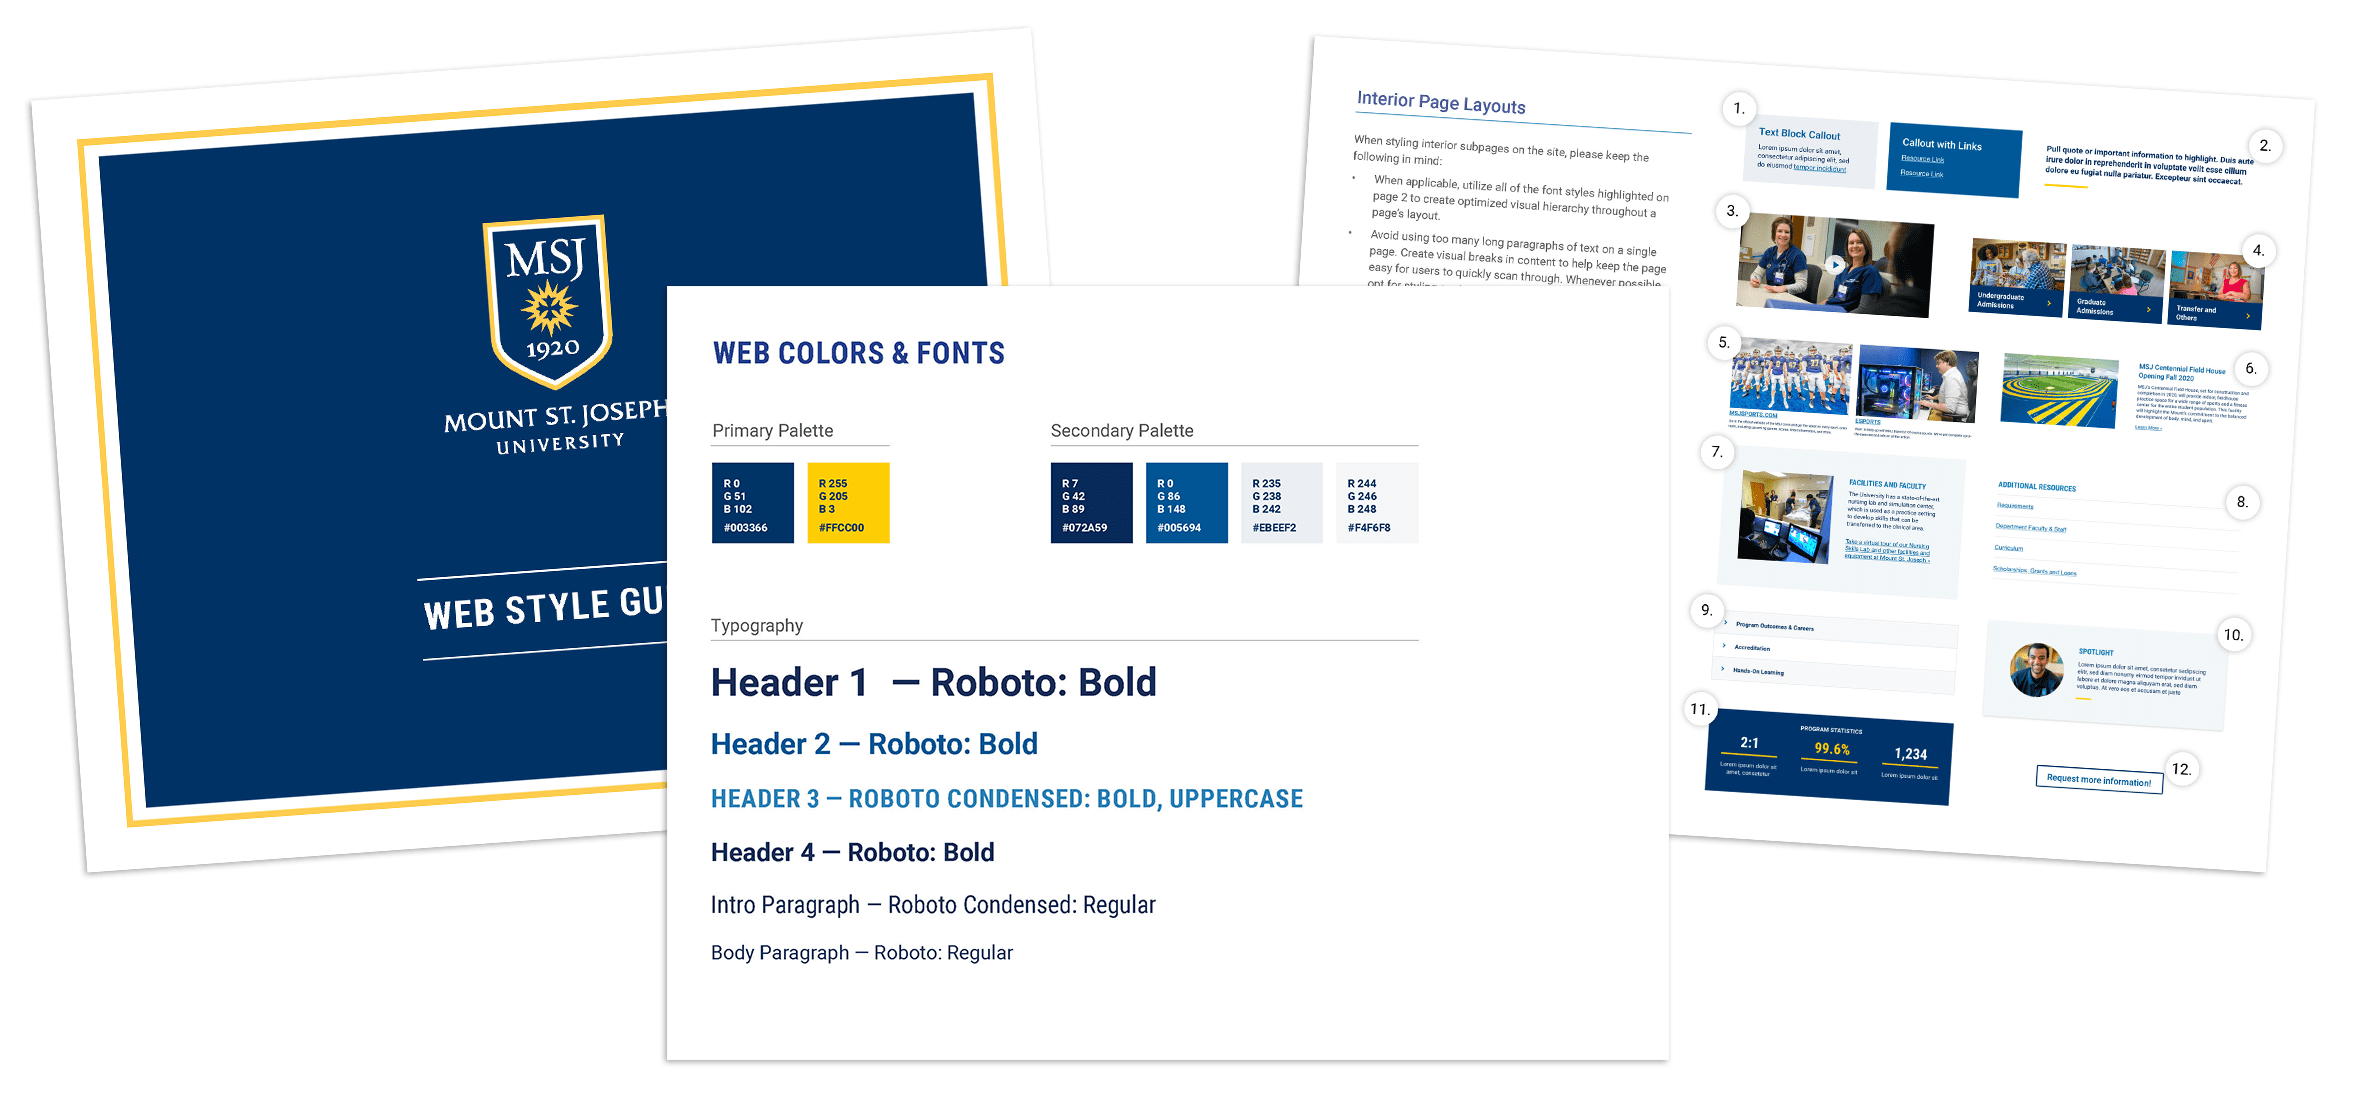 Pages from the web style guide we created for the MSJ website updates, showing new color palettes, typography and page components